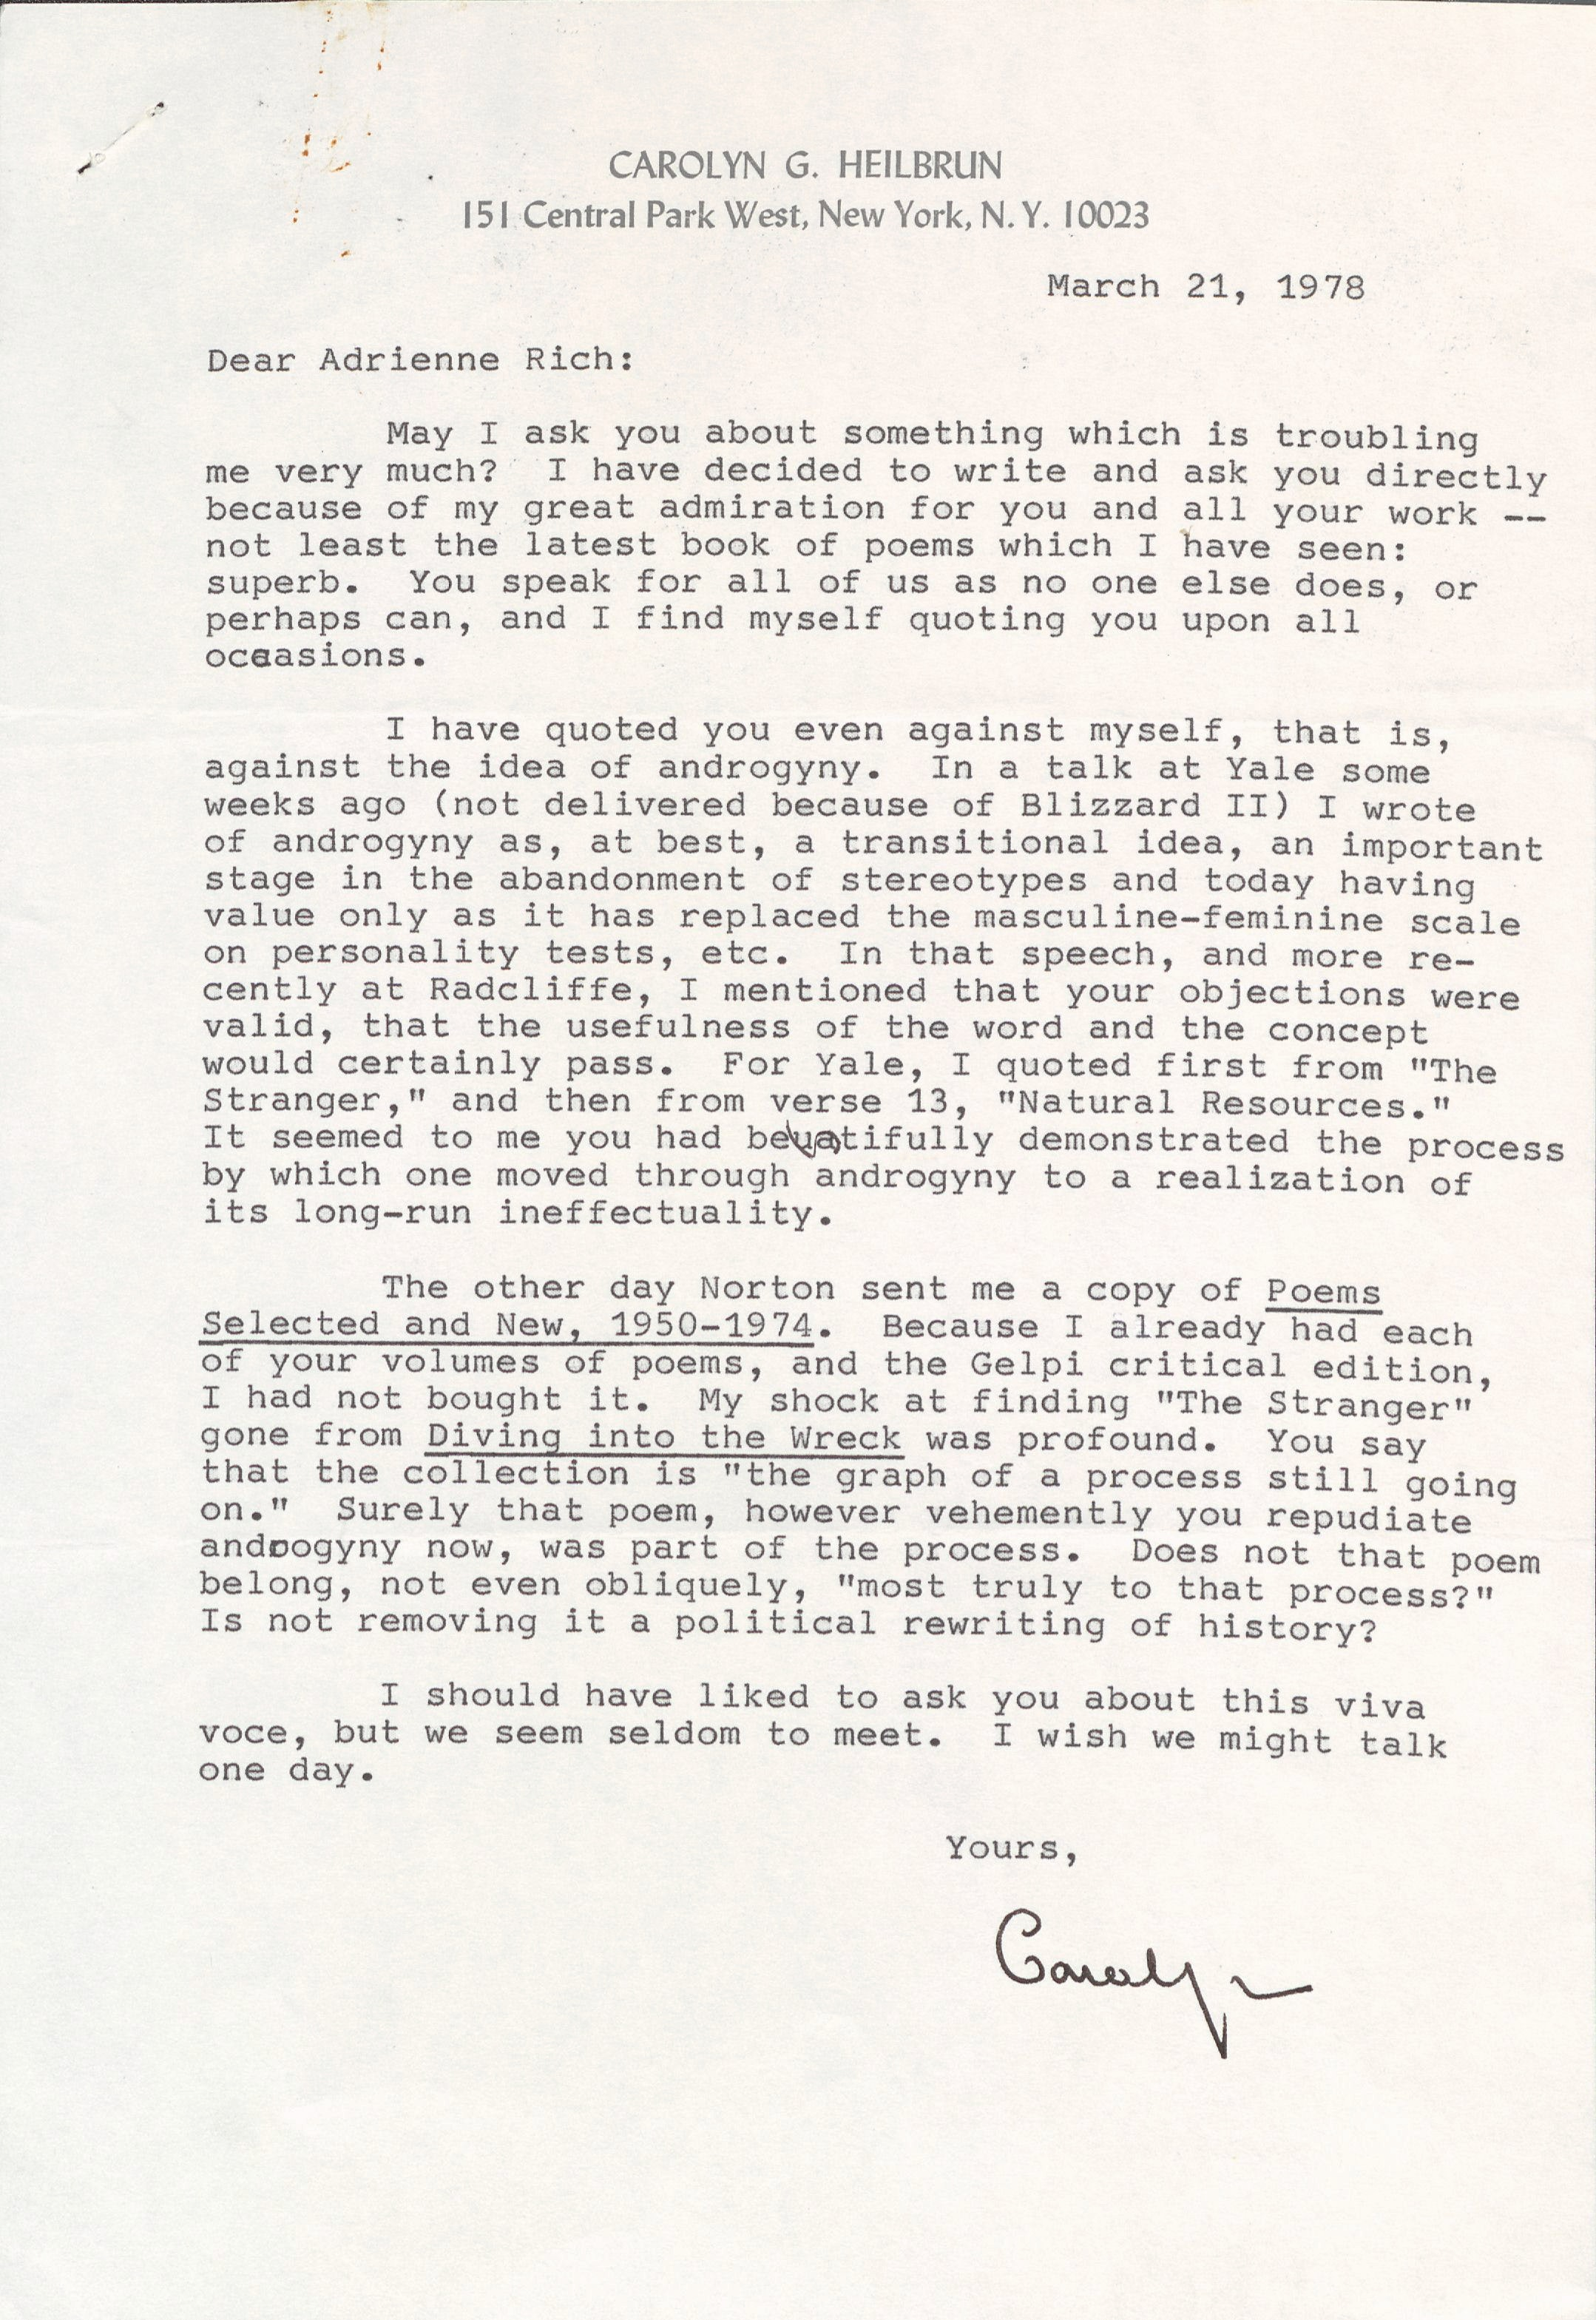 Letter to Adrienne Rich